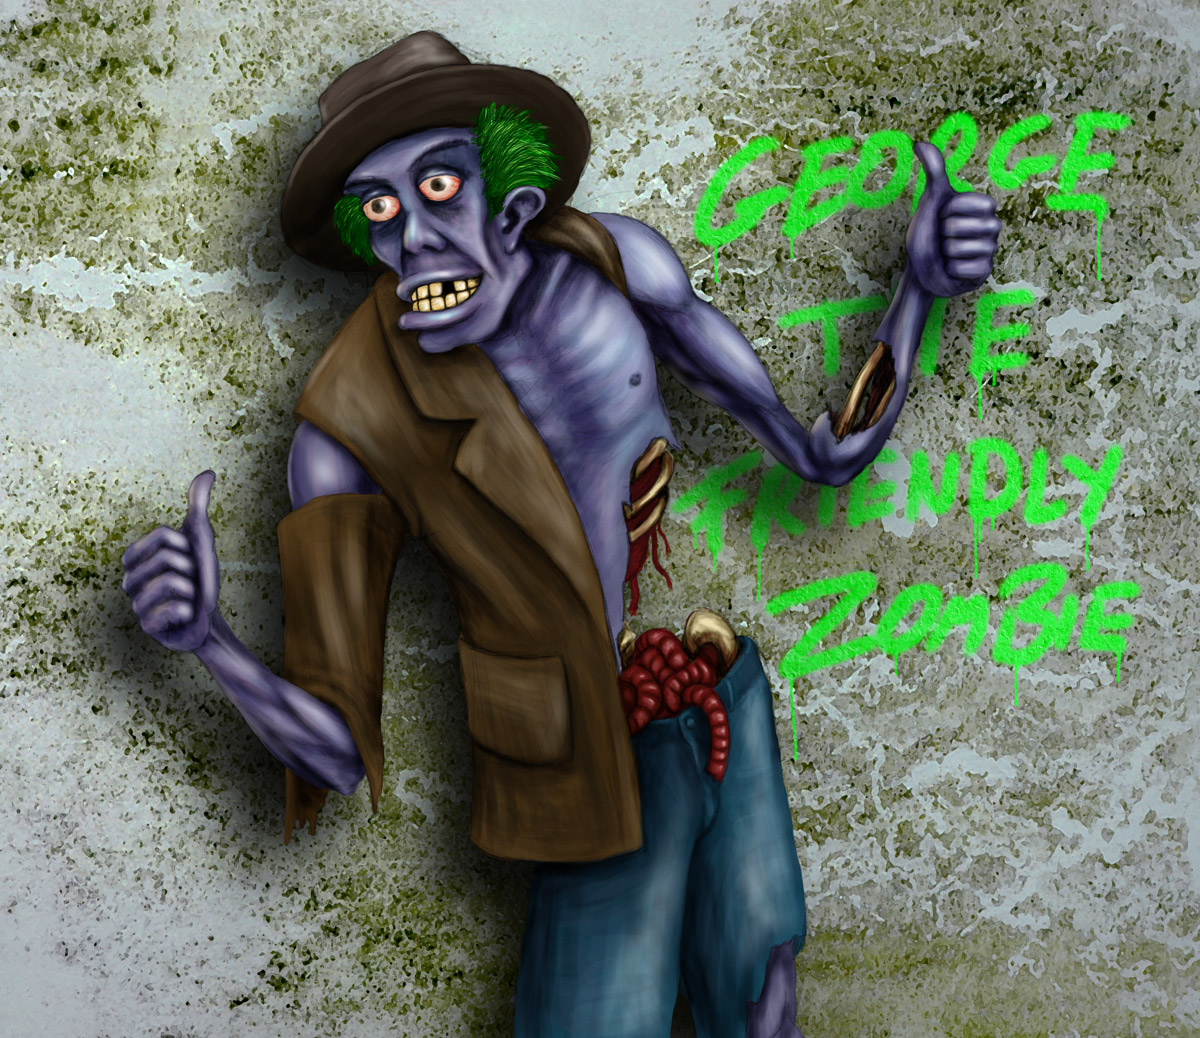 George the friendly zombie